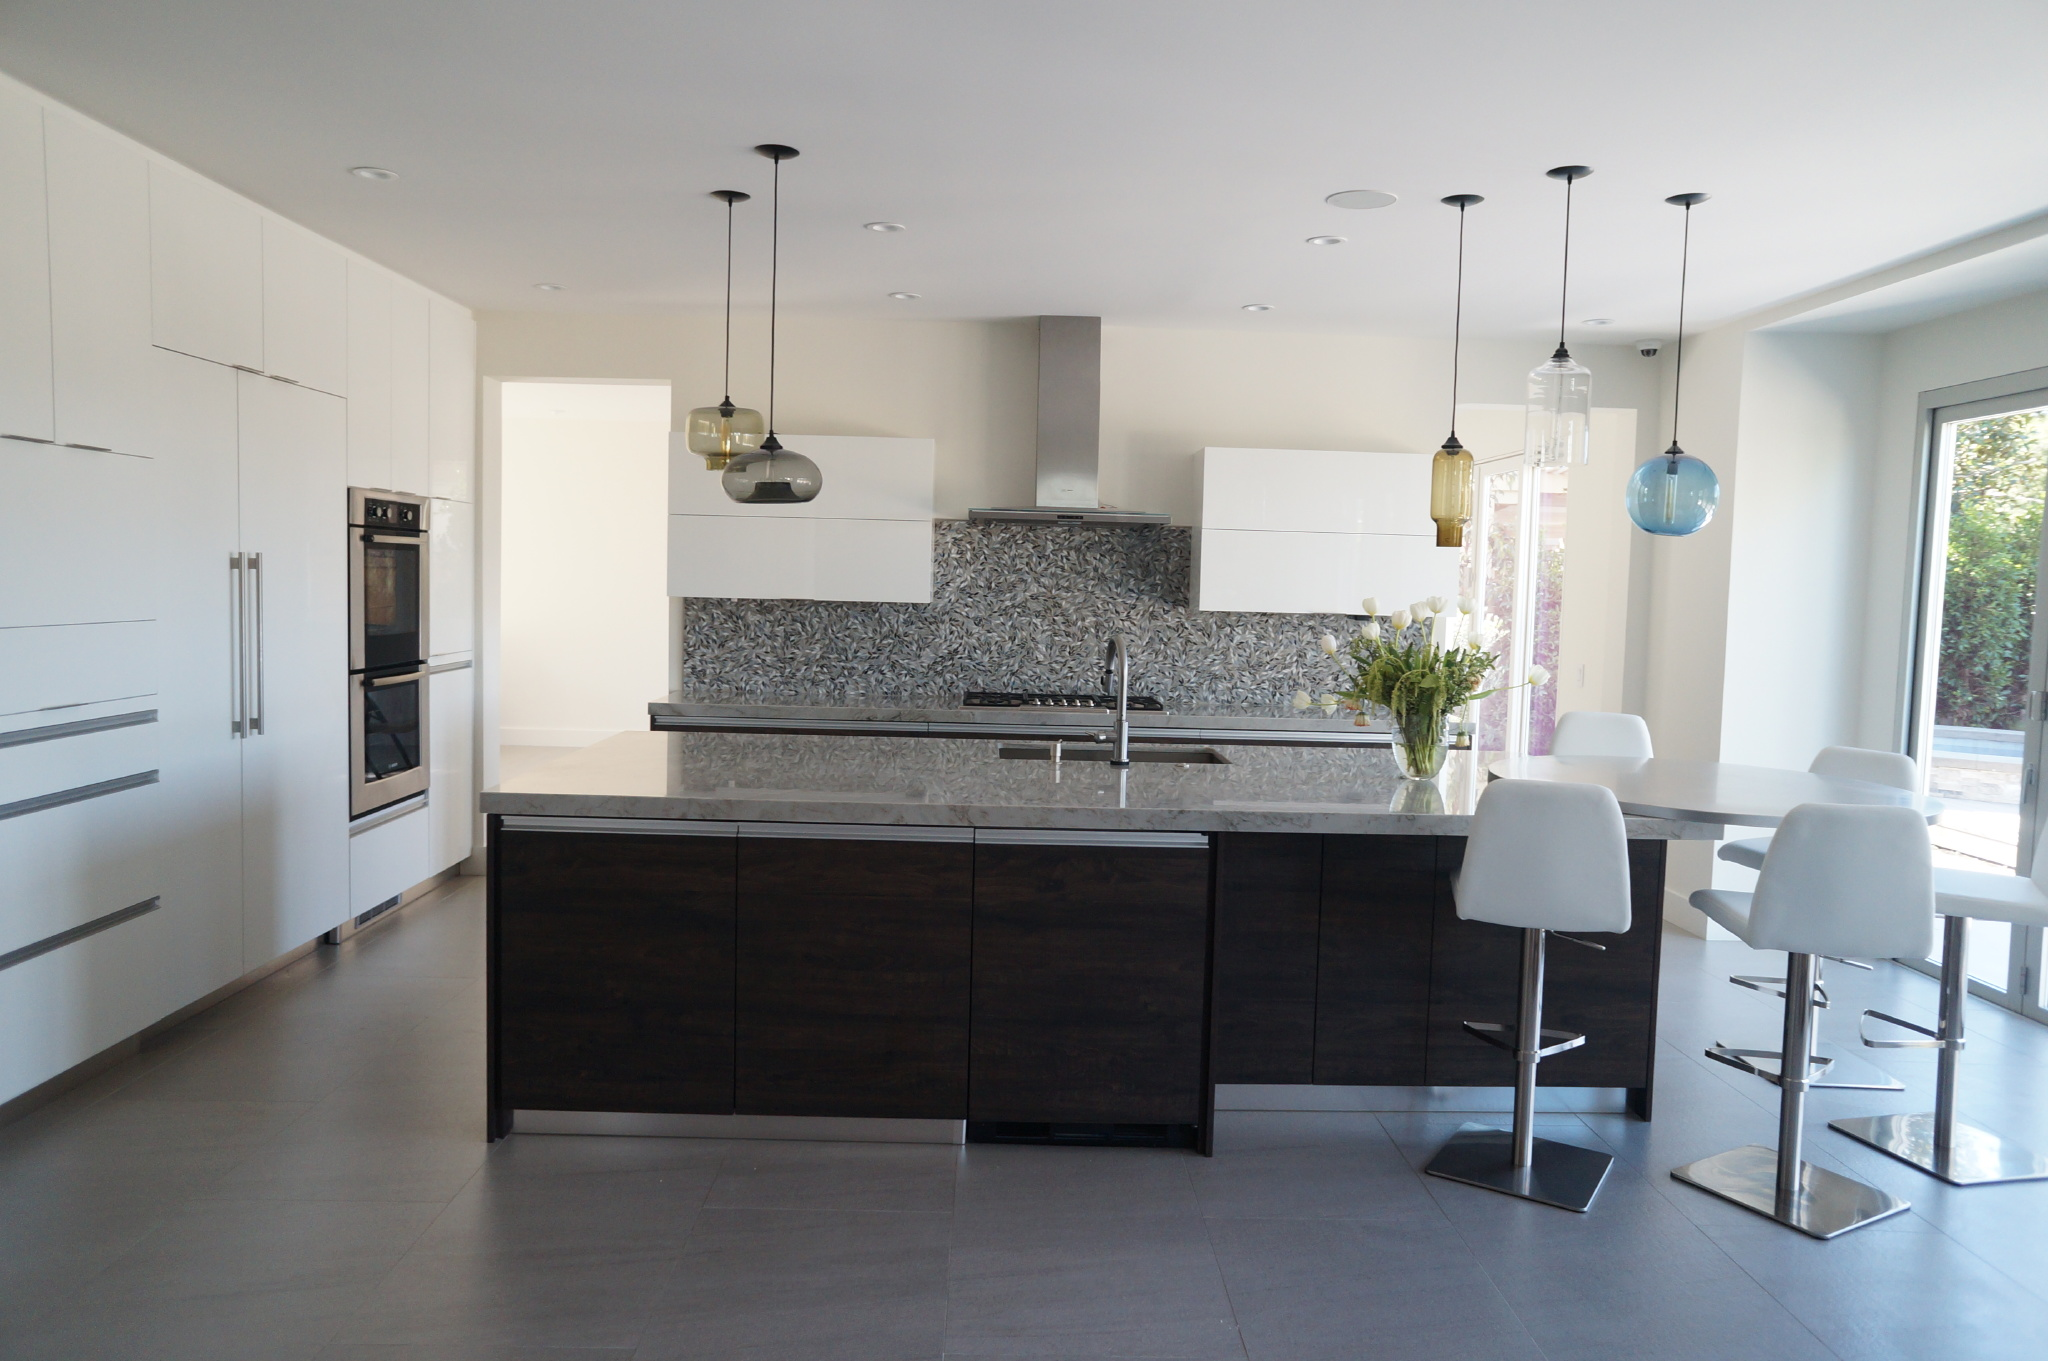 Newform Kitchen And Design Has The Best Custom Cabinets In Orange County With You Ll Be At Home